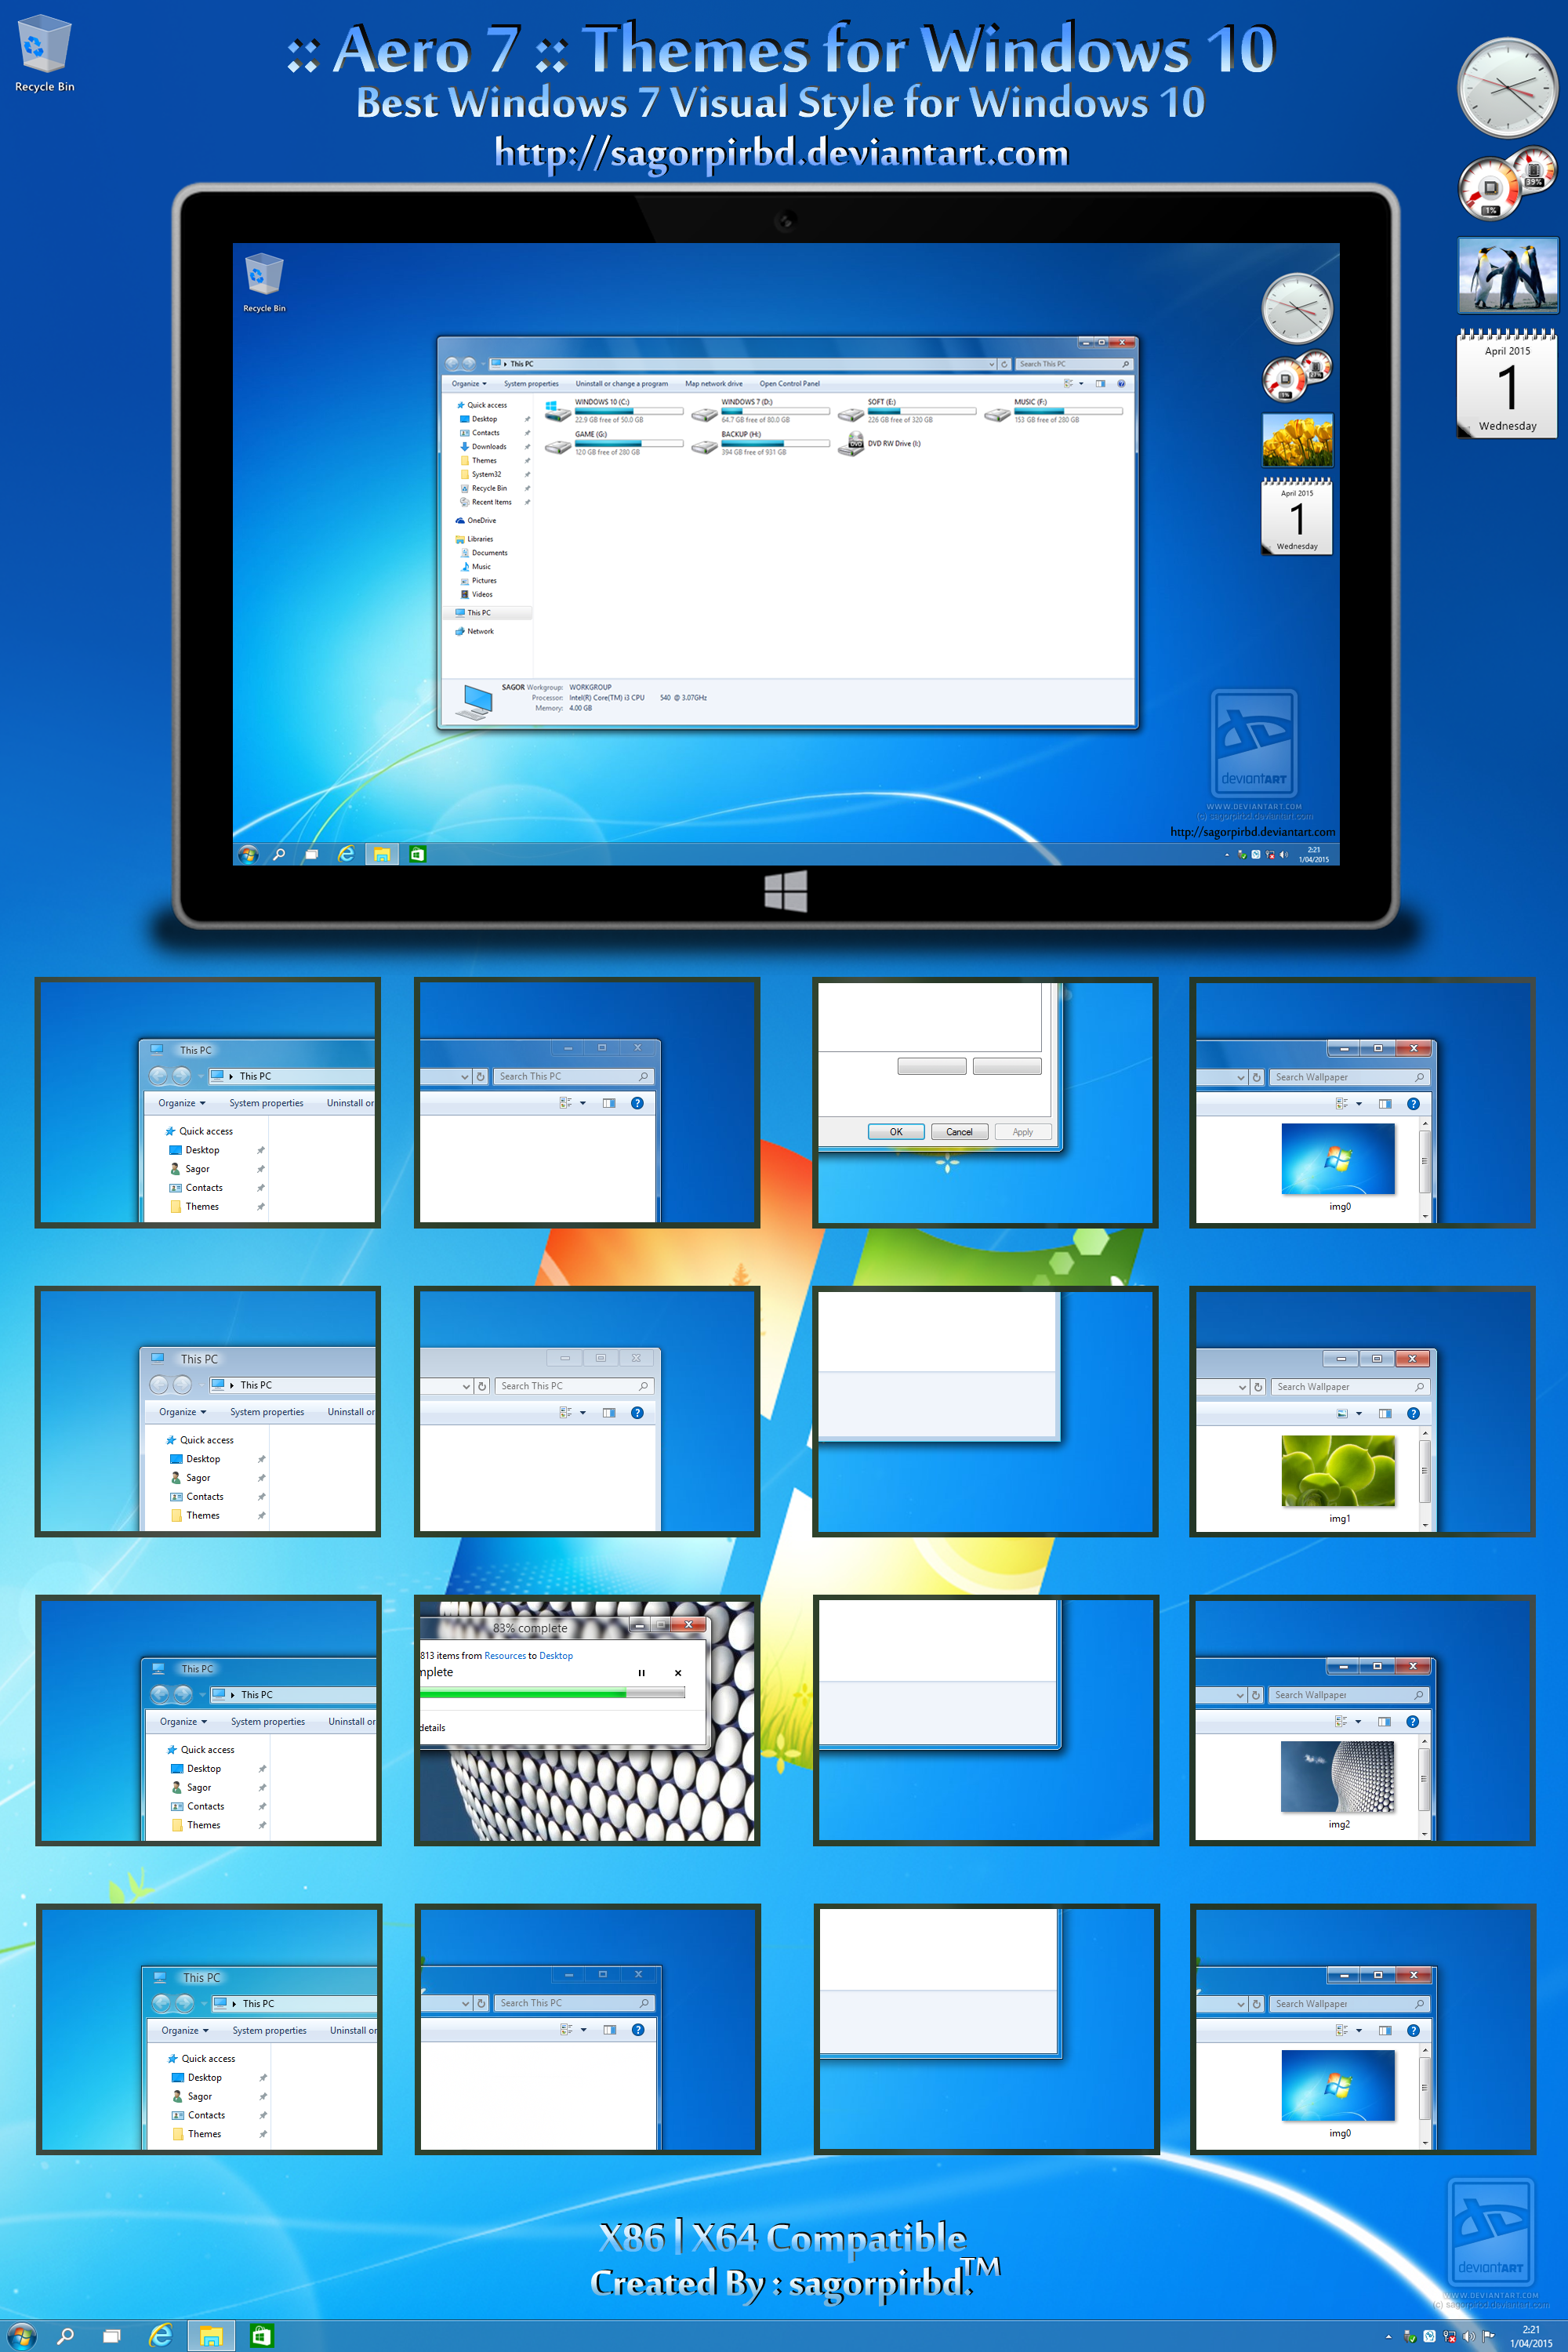 aero_7_themes_for_win10_final_by_sagorpirbd-d8nypid.png